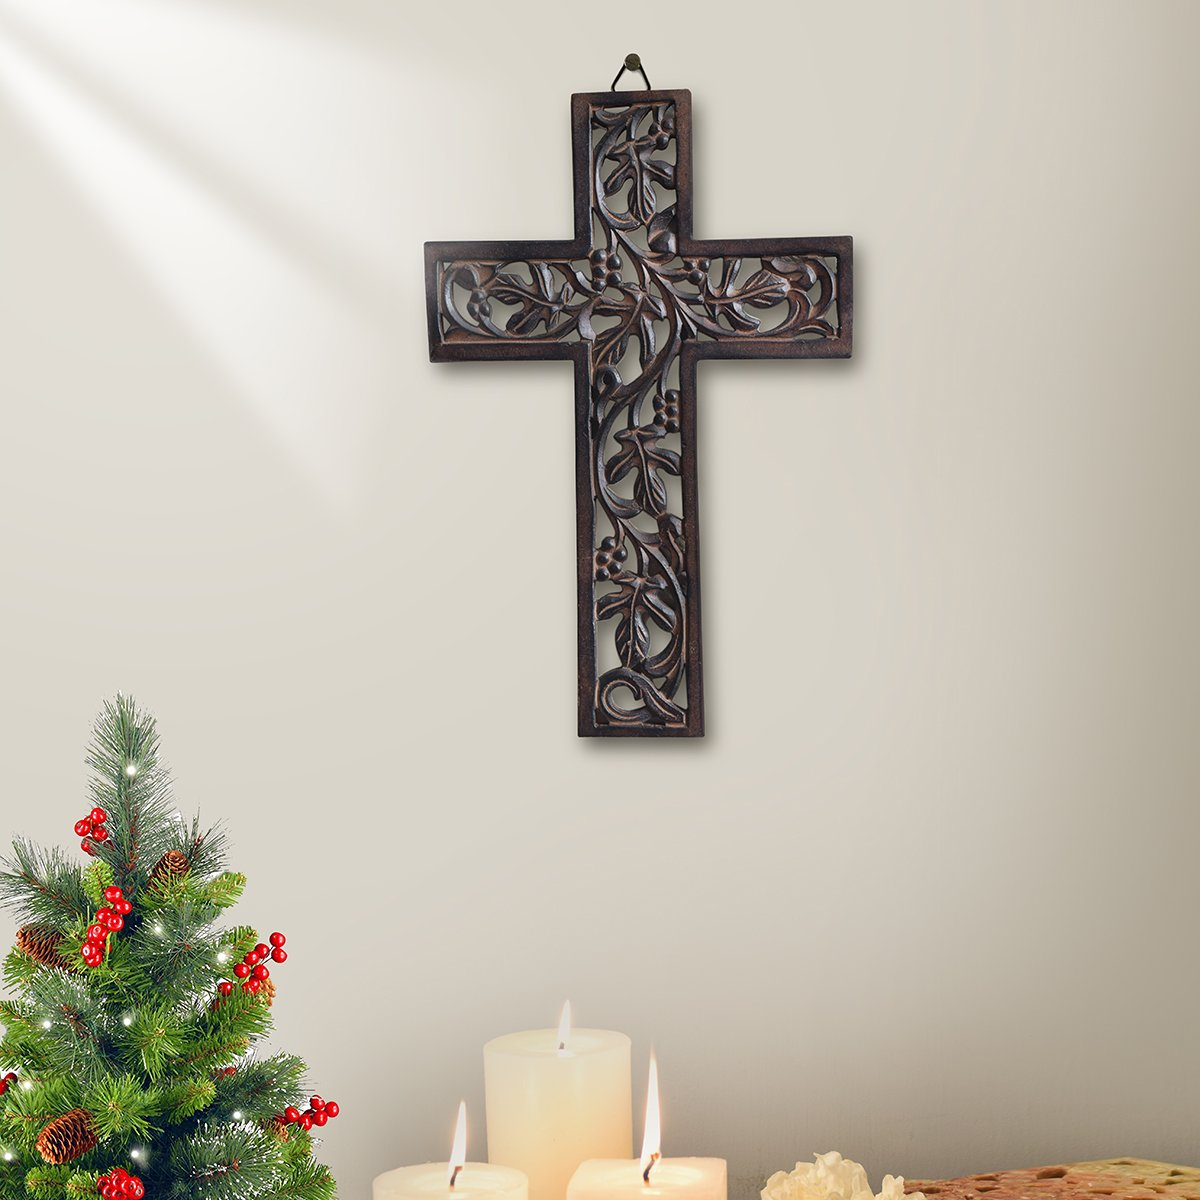 Wooden Cross with Handmade Floral Carving French Plaque for Living Room Home Decor Accessories